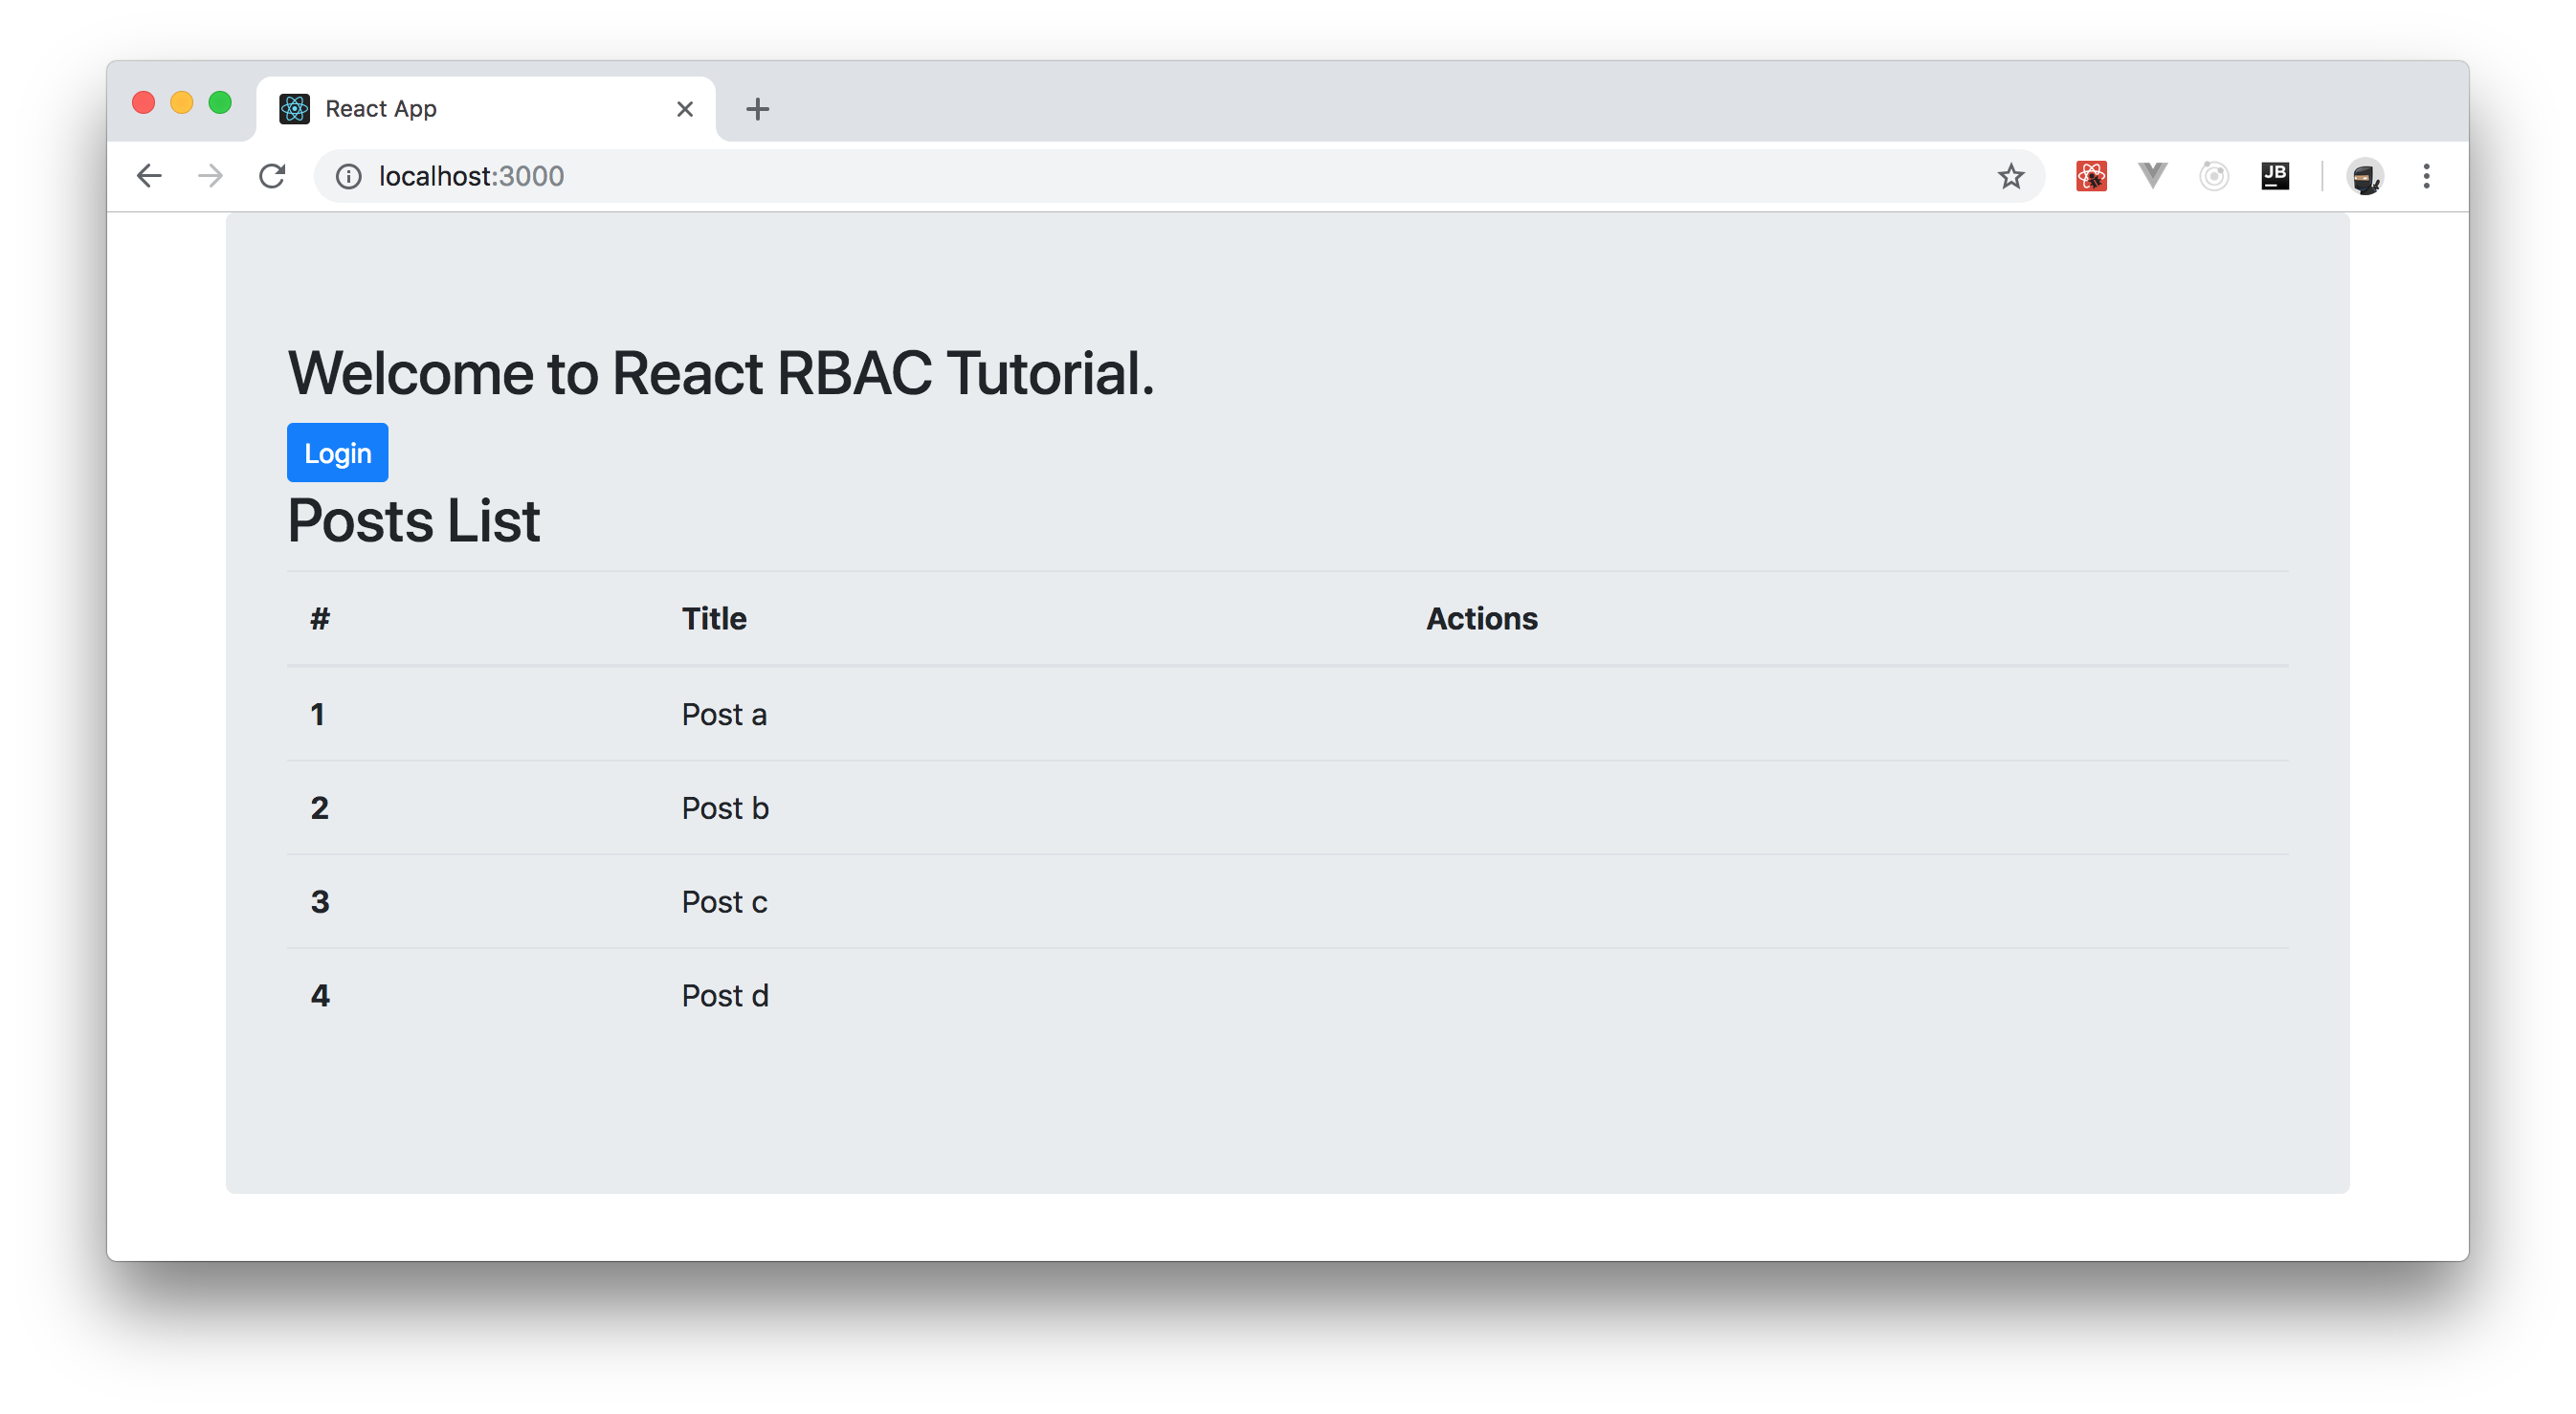 React App running locally, showing unauthenticated user role view